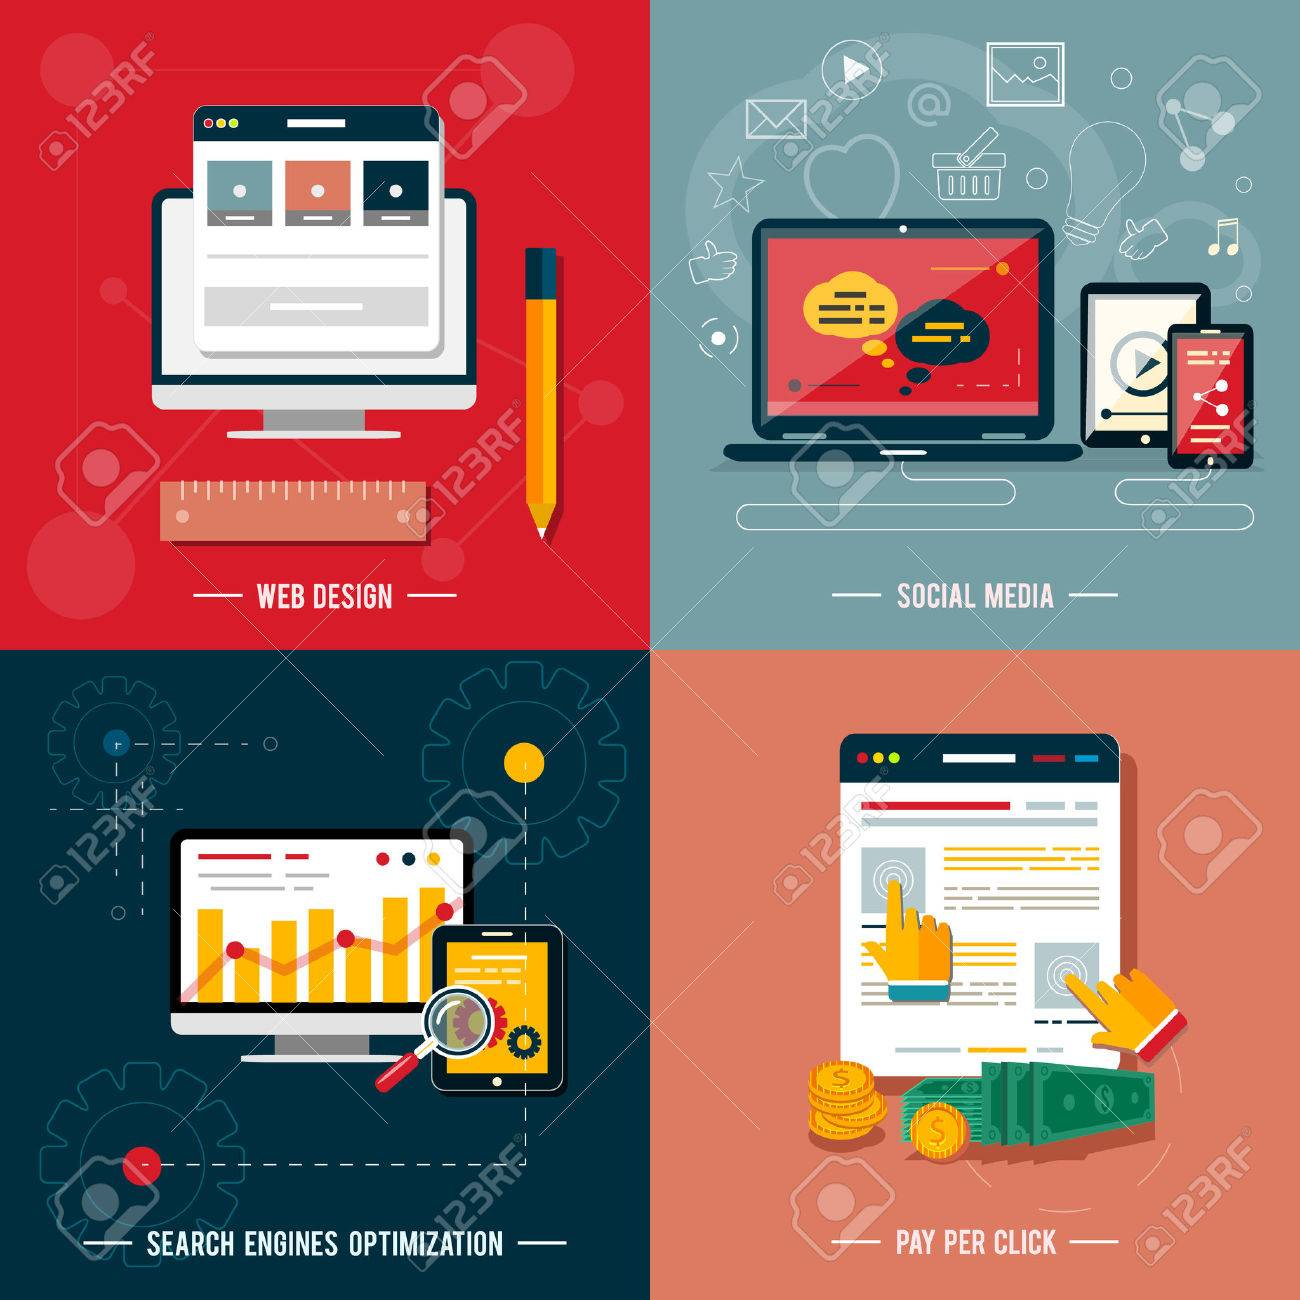 Icons For Web Design Seo Social Media And Pay Per Click Internet Royalty Free Cliparts Vectors And Stock Illustration Image 25835147